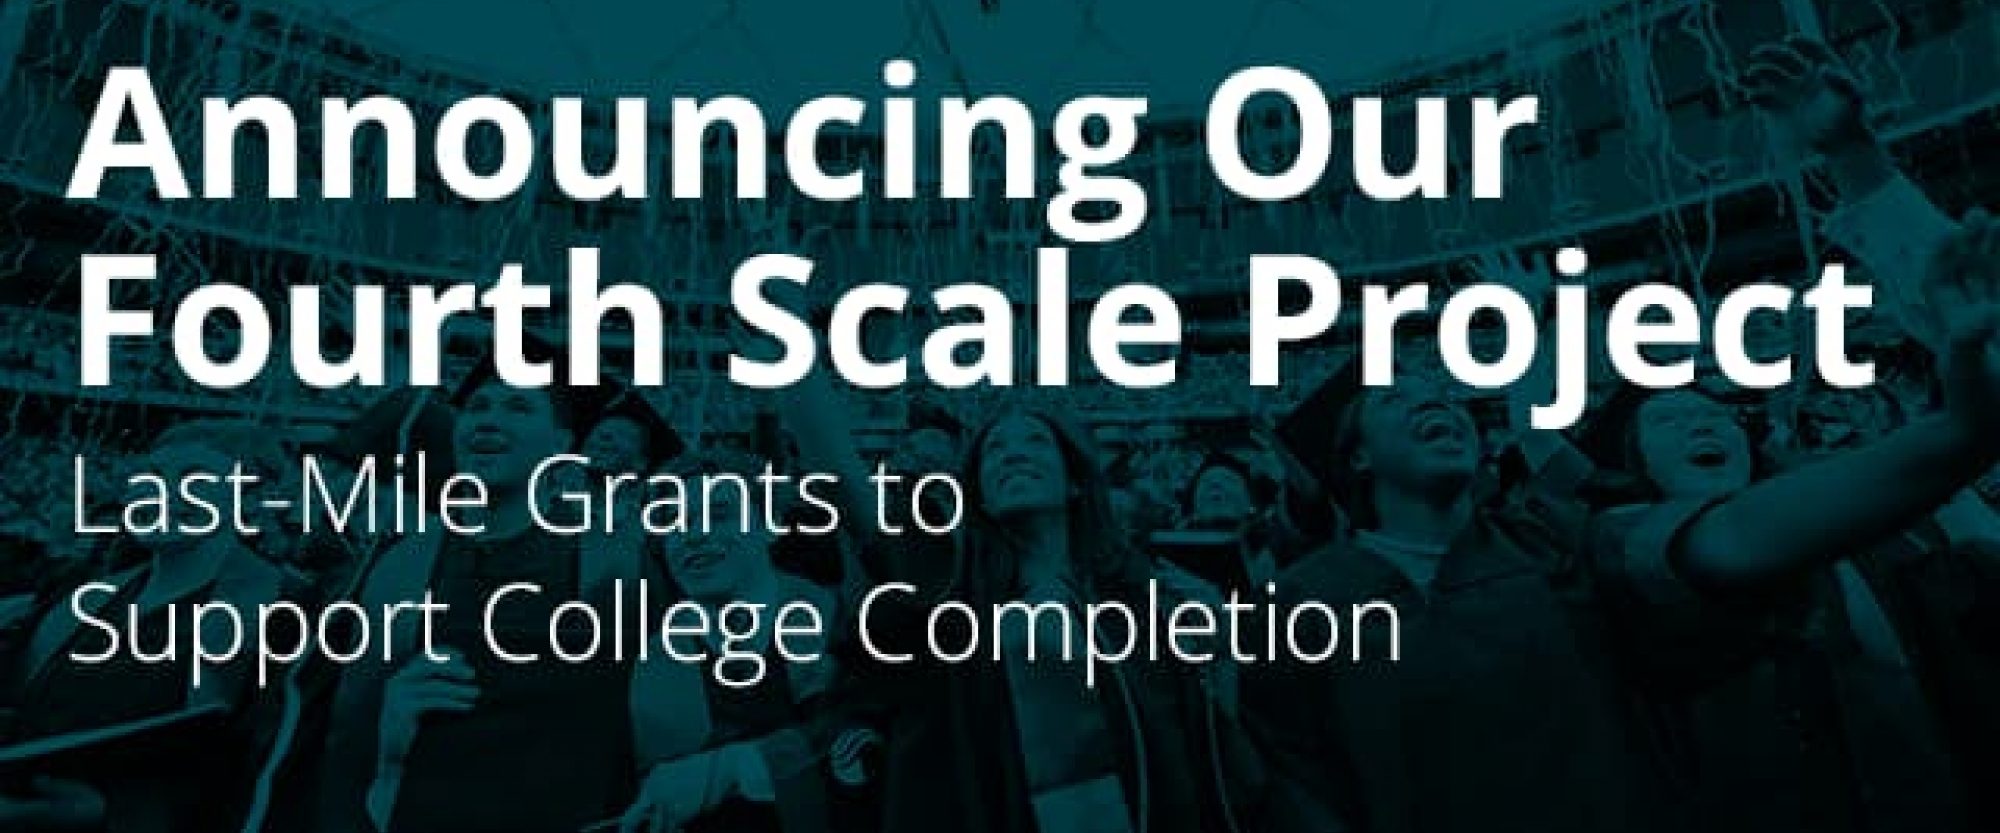 Announcing Our Fourth Scale Project: Last-Mile Grants to Support College Completion